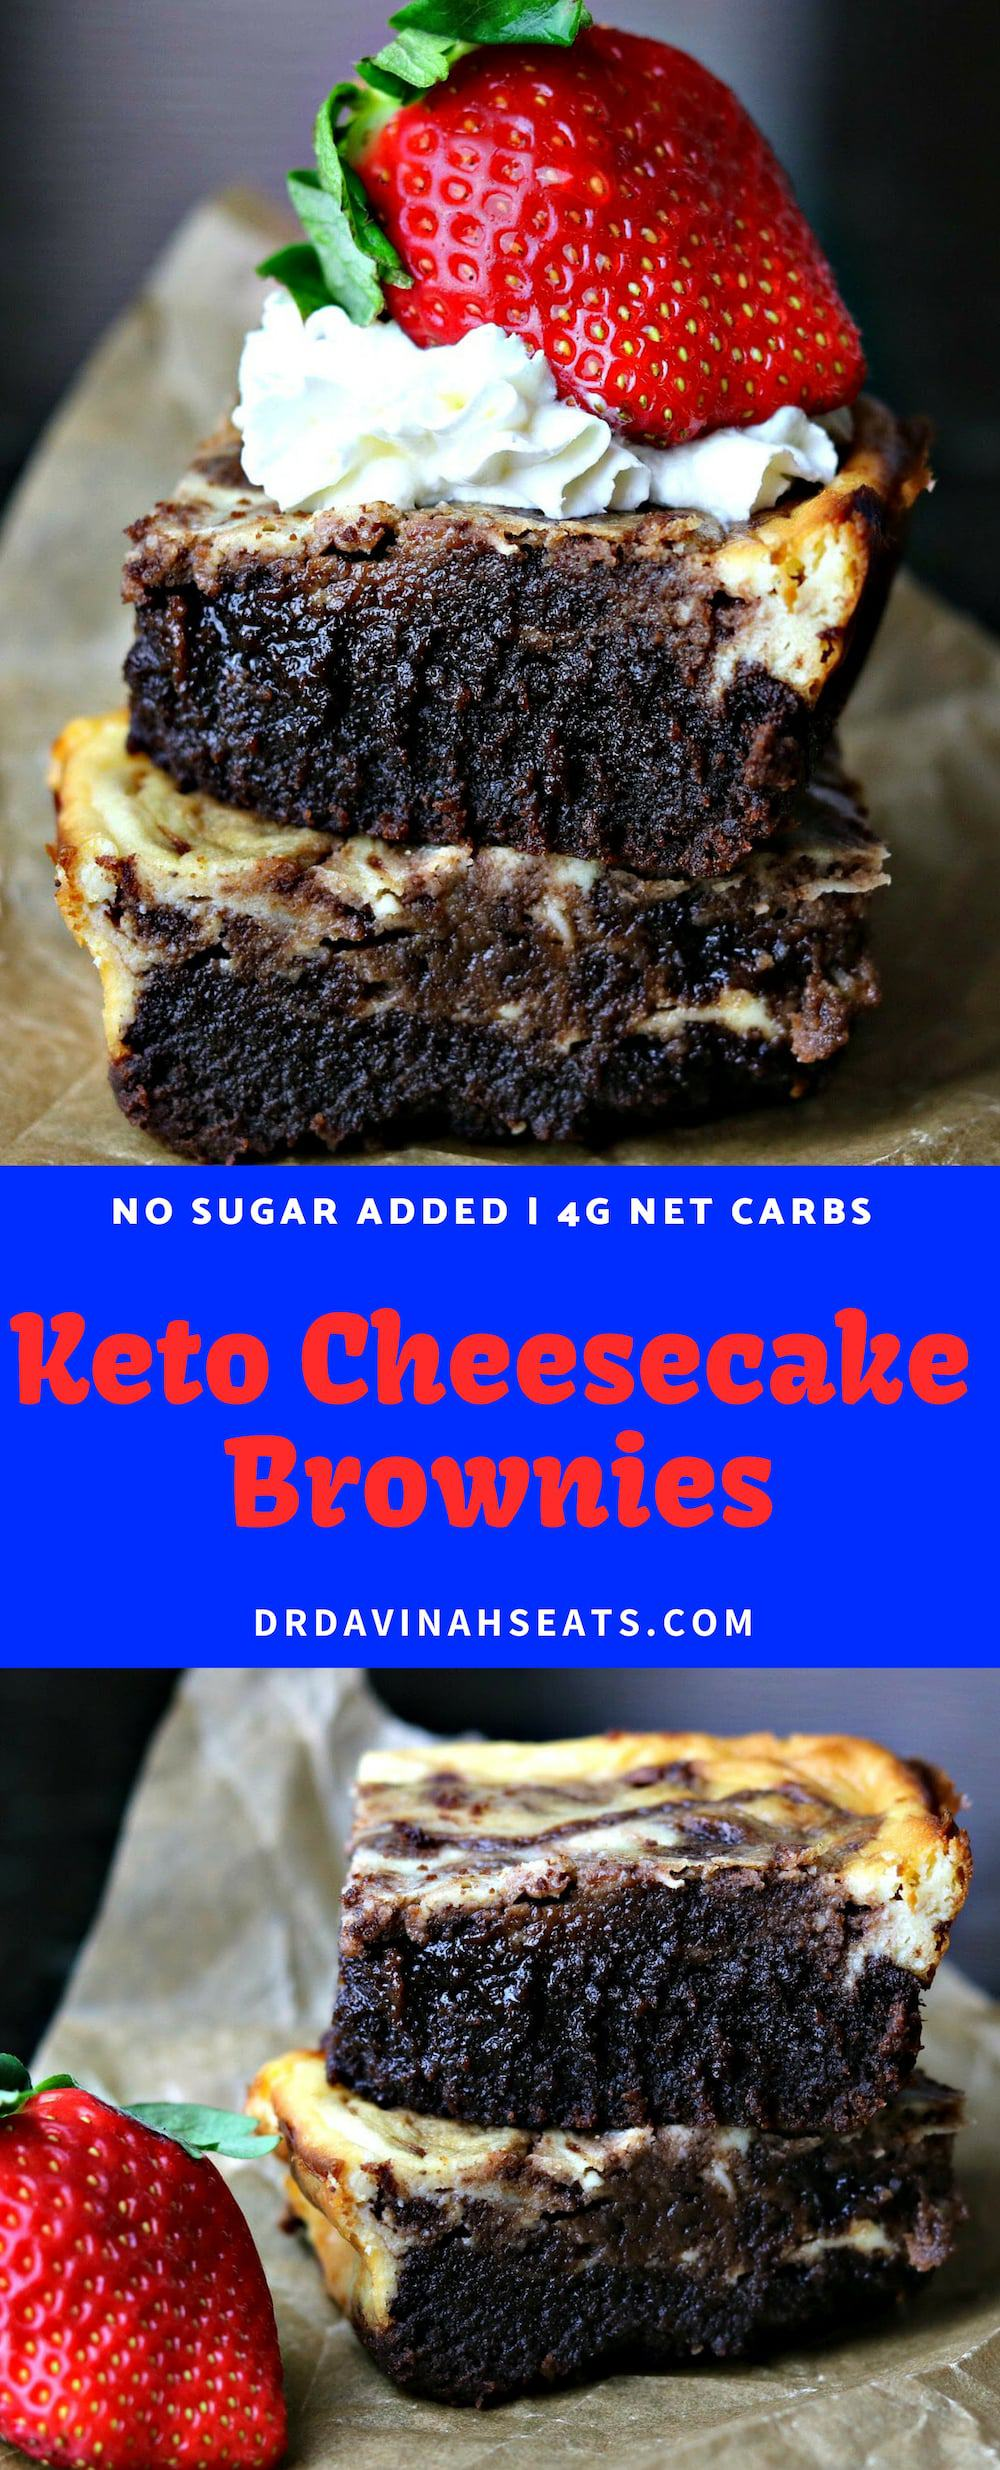 A super moist, fudgy and no sugar added recipe for Keto Cheesecake Brownies. I kept this easy by using a coconut flour-based low carb baking mix. Perfect for Valentine's Day or as an awesome dessert. #keto #ketodessert #lowcarb #lowcarbdessert #nosugaradded #grainfree #valentinesday